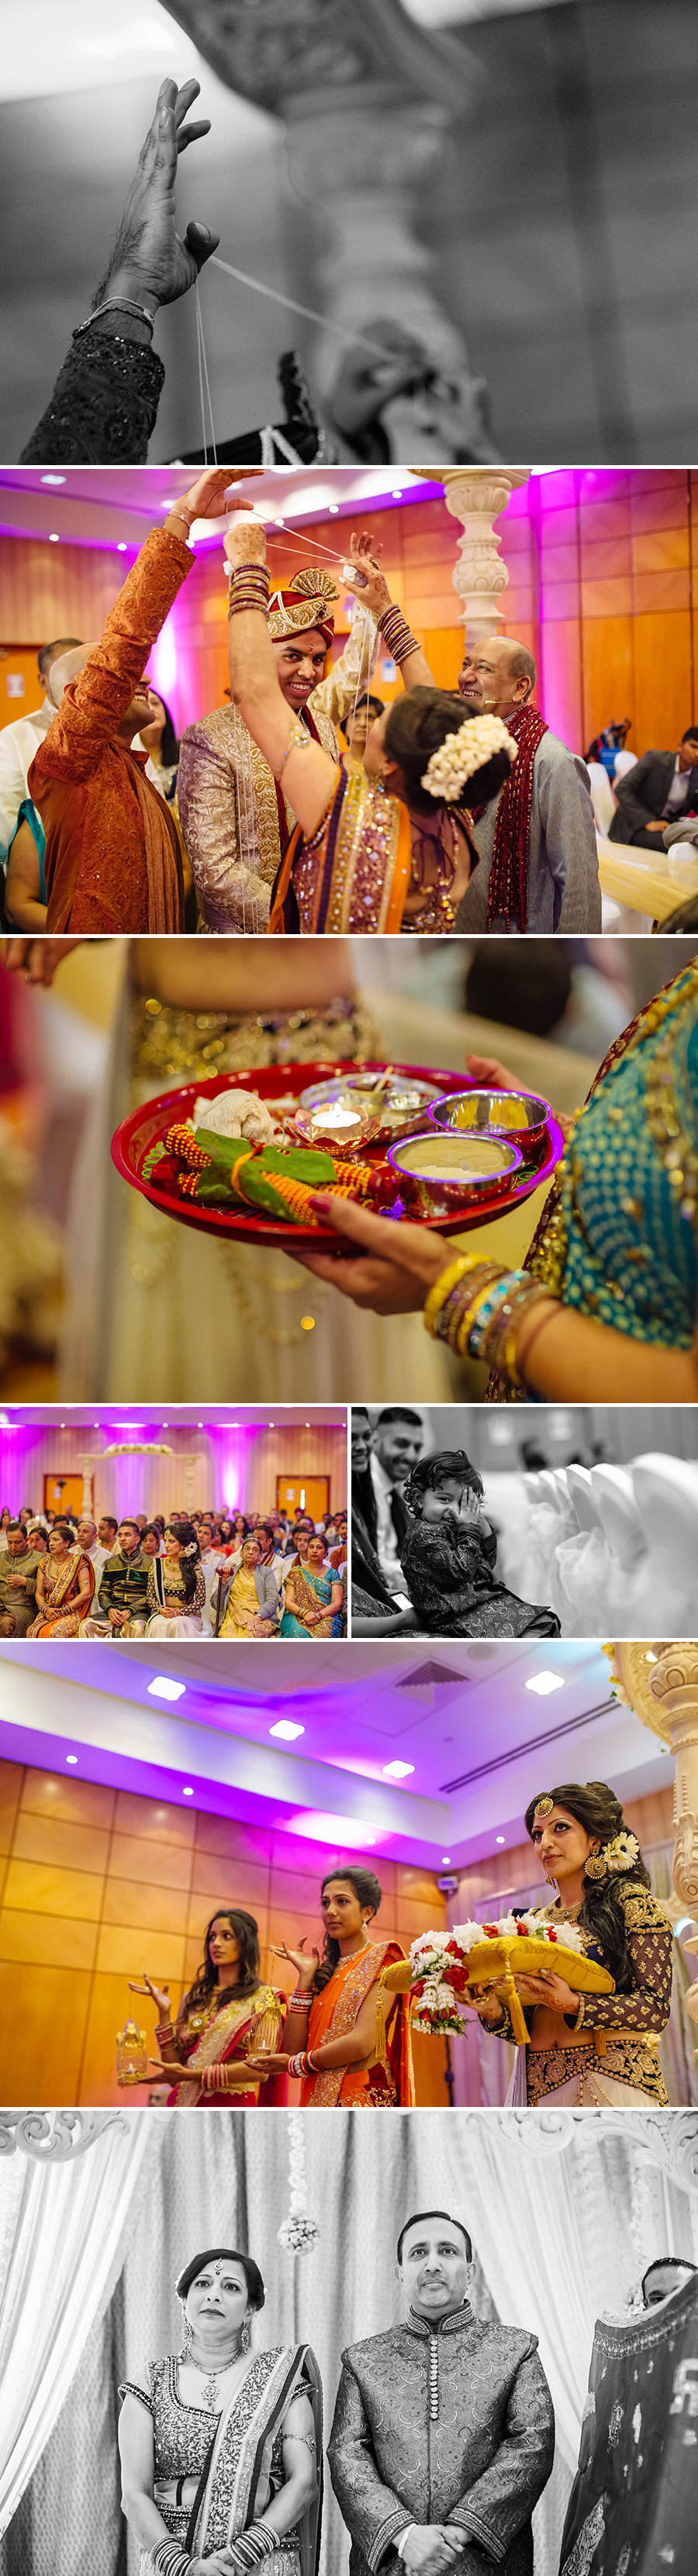 05_destination_indian_wedding_marriott wedding_top wedding photography_irish photographers_05